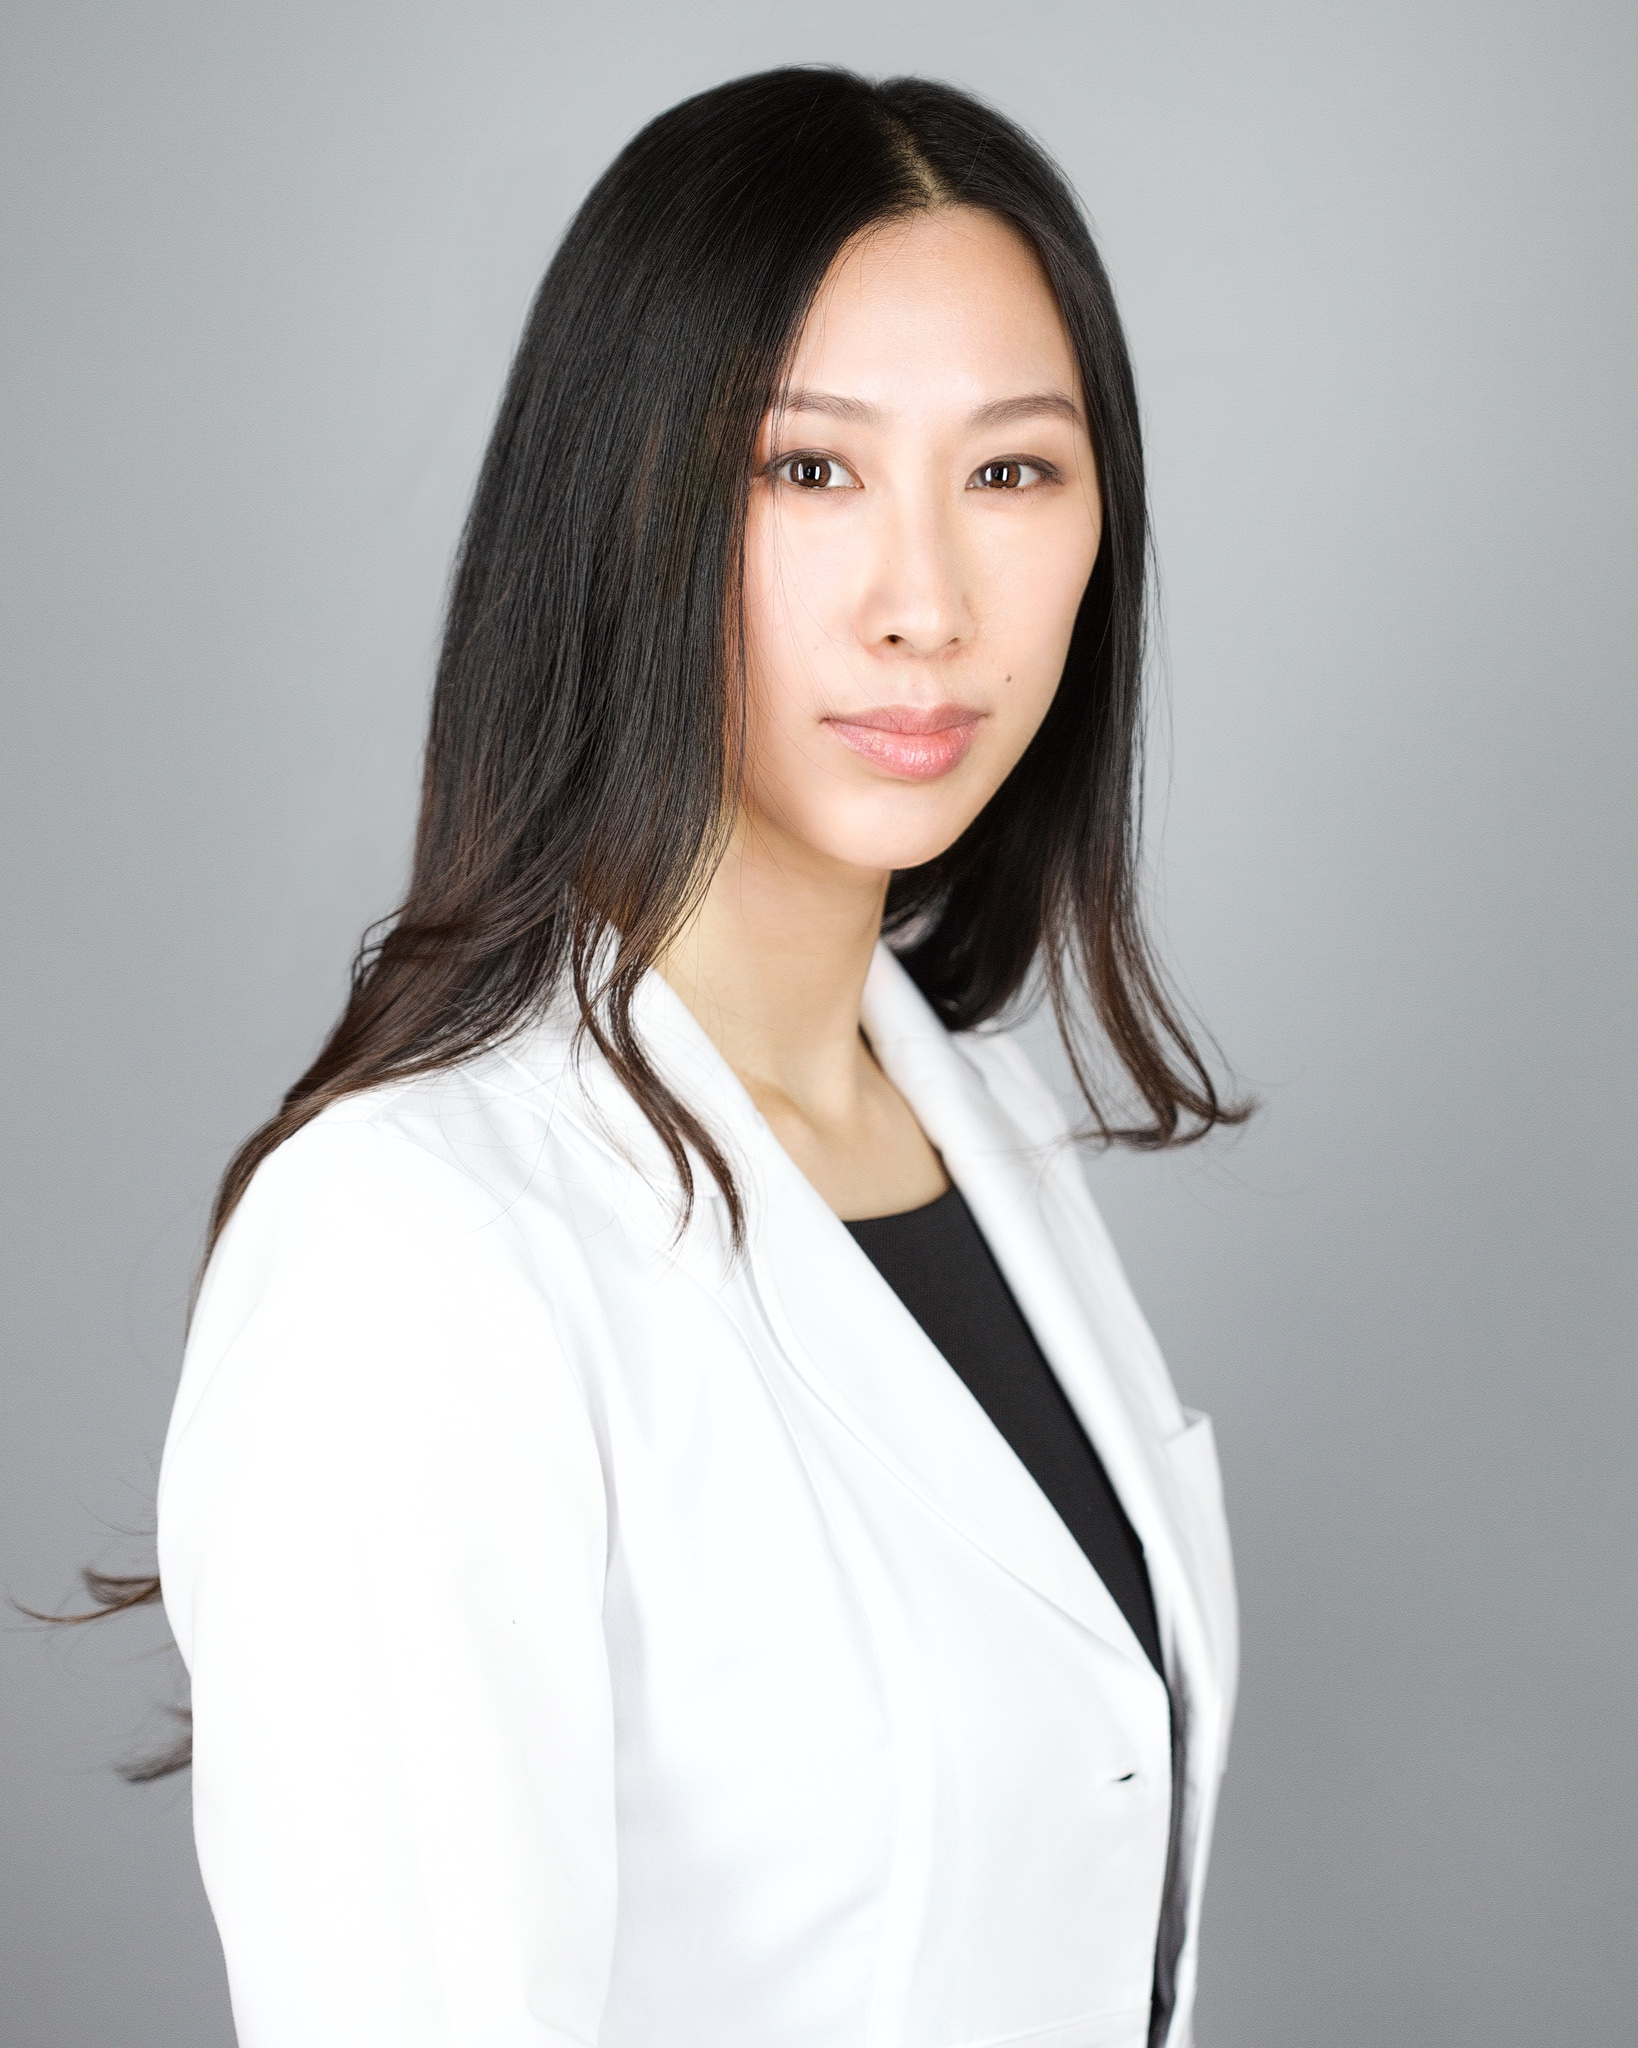 Acupuncture and Chiropractor / Upper East Side, NYC